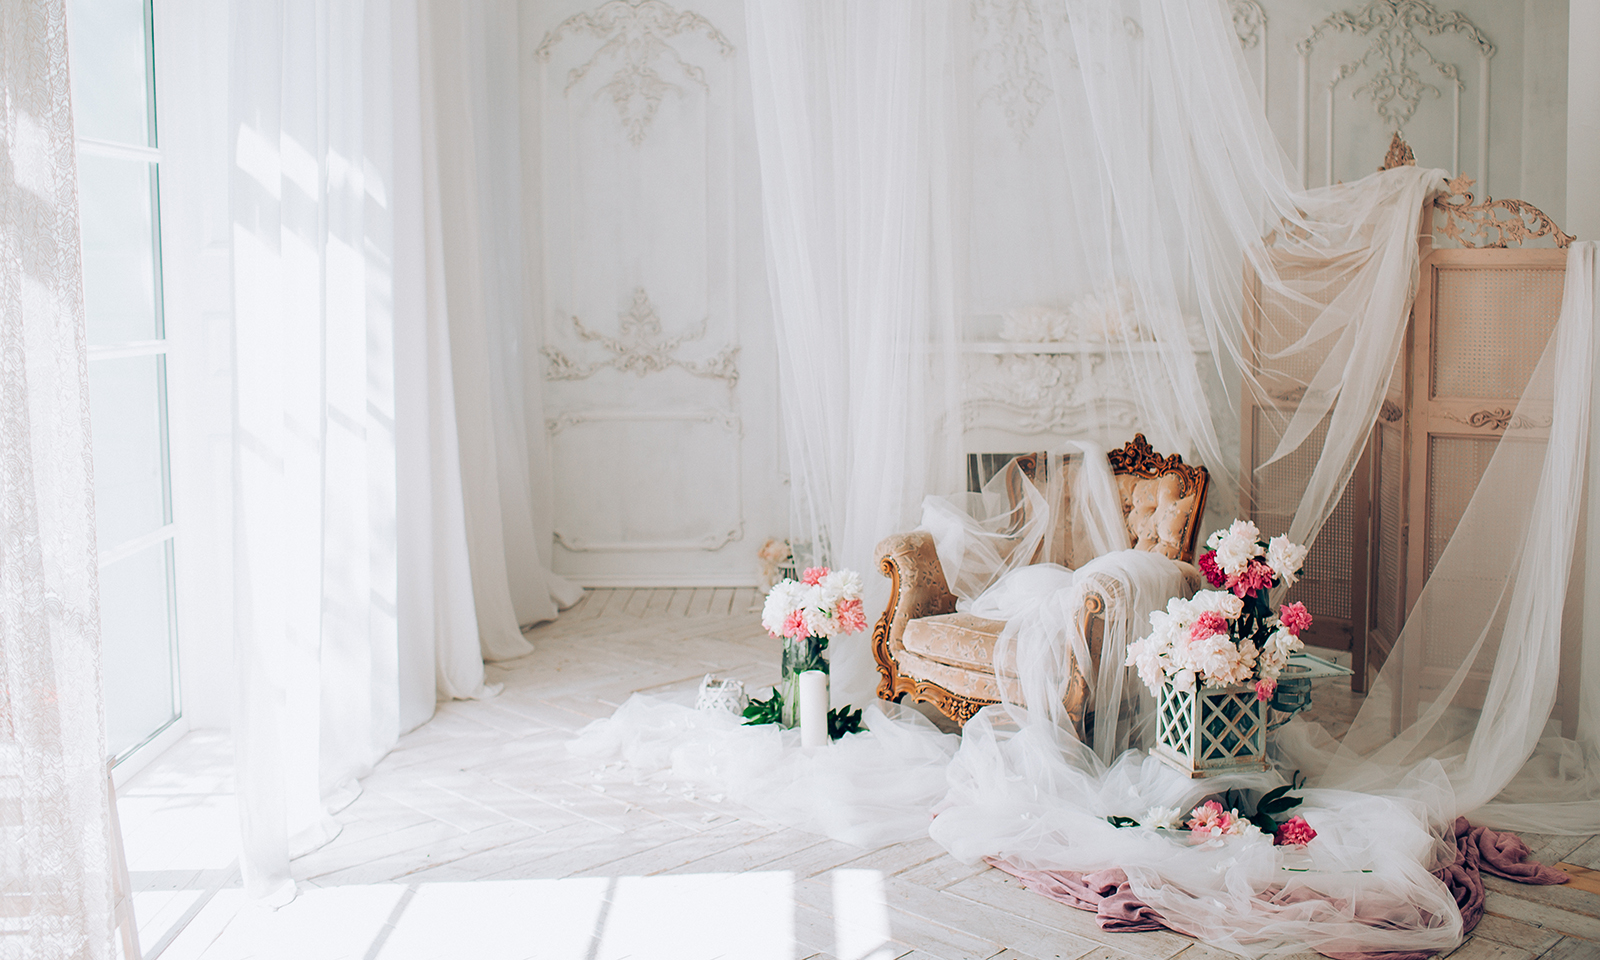 getting-married-biggest-step-towards-happiness-beautiful-wedding-decor